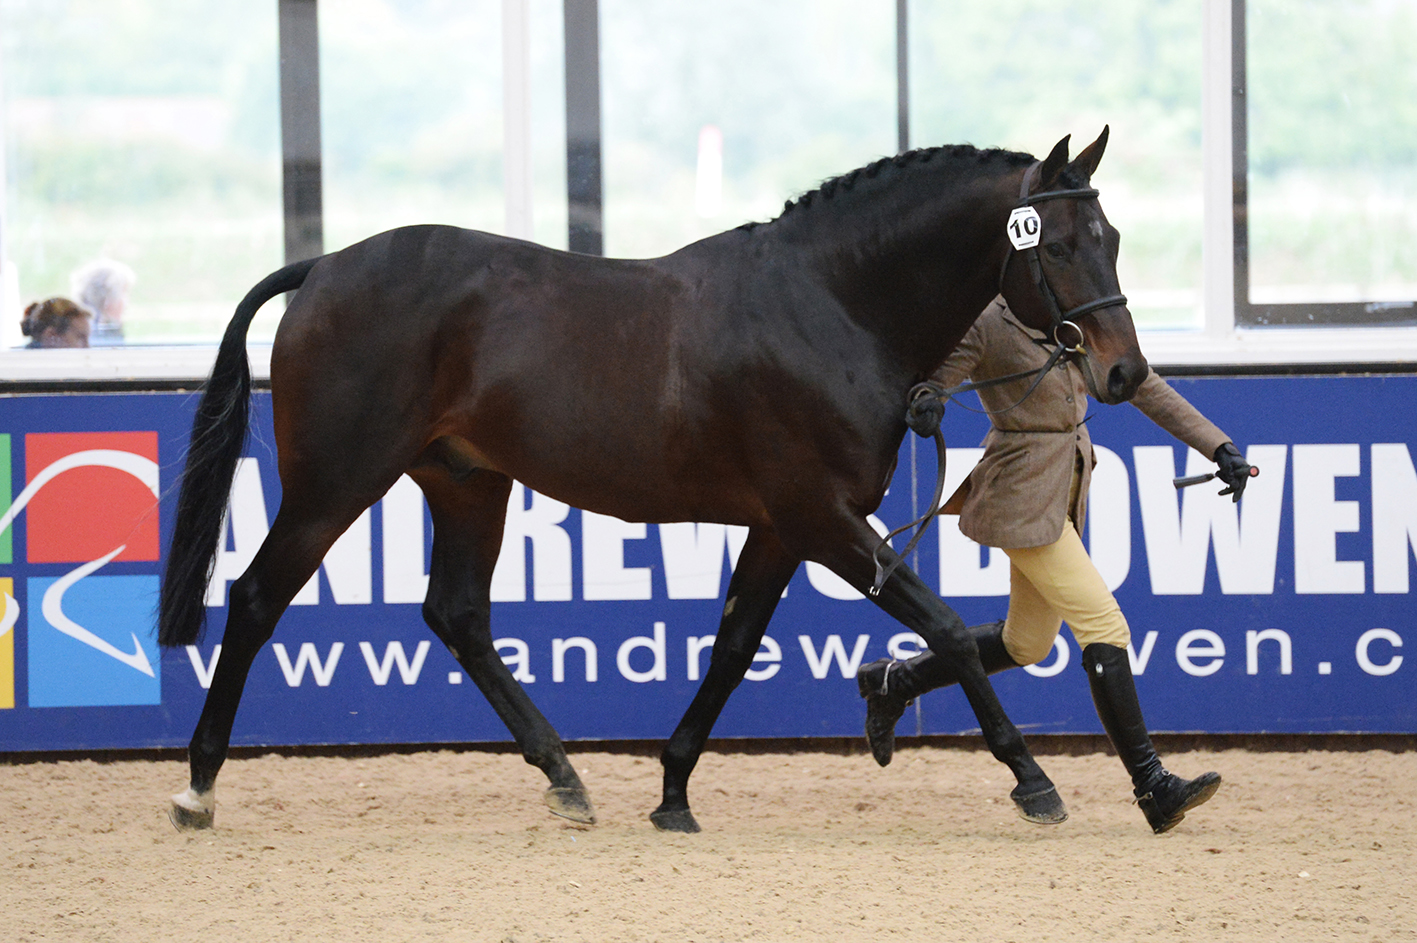 Wessex Starring Role owned by John Ford - Star Shines Bright on TopSpec Stud Balancer